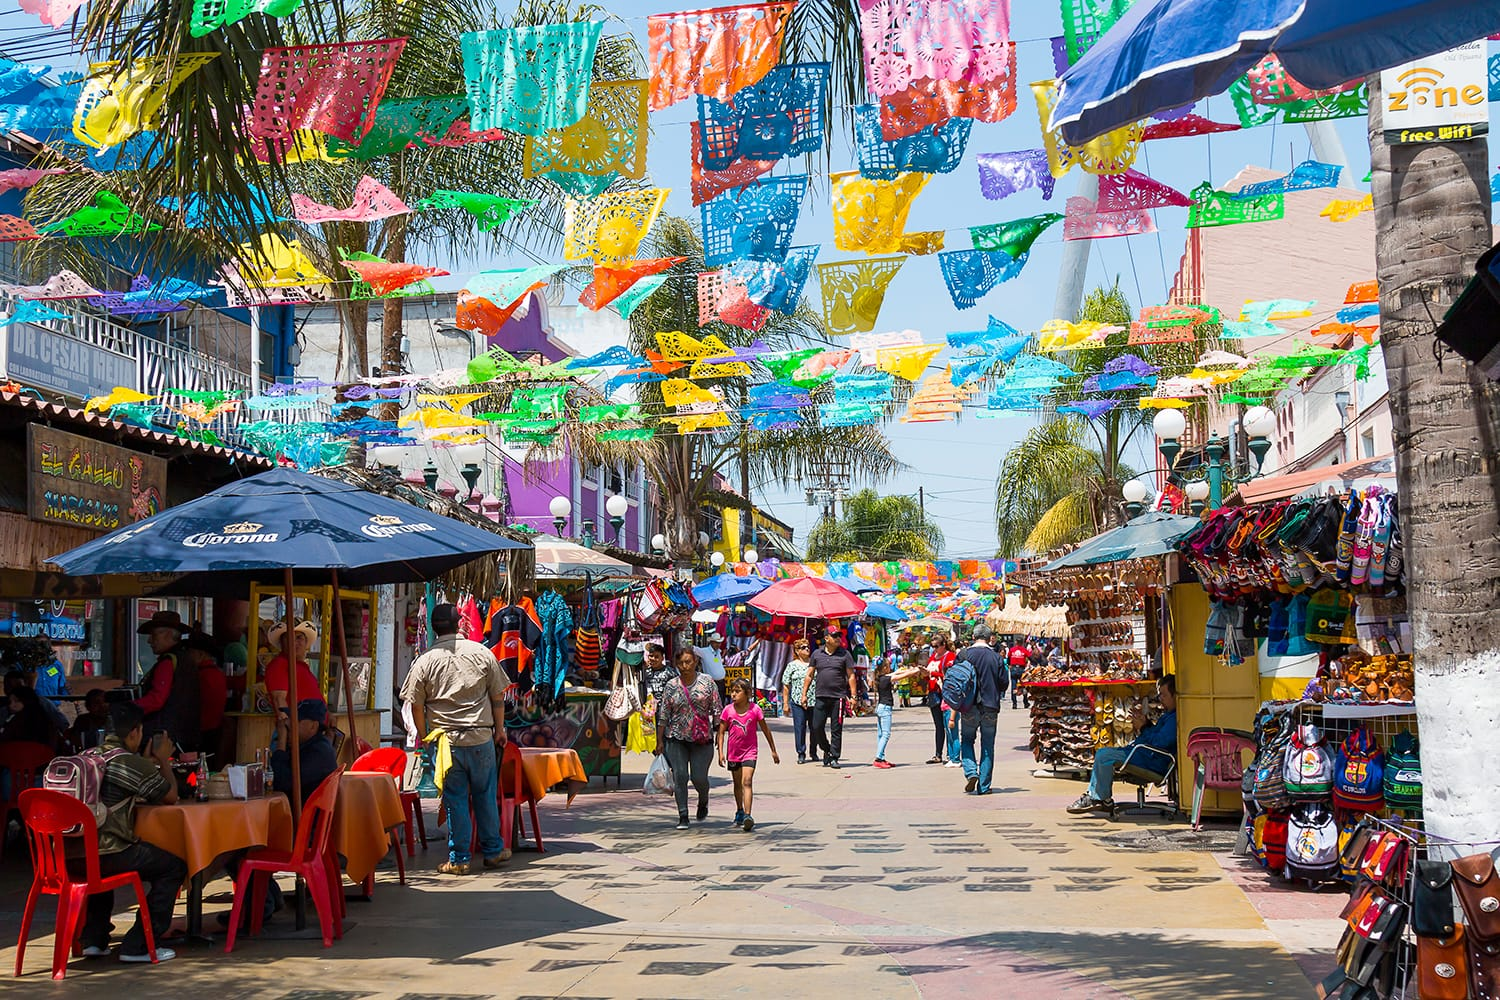 People shop and walk below colorful hanging flags at Plaza Santa Cecilia, a historic Mexican square in the heart of Tijuana, Mexico